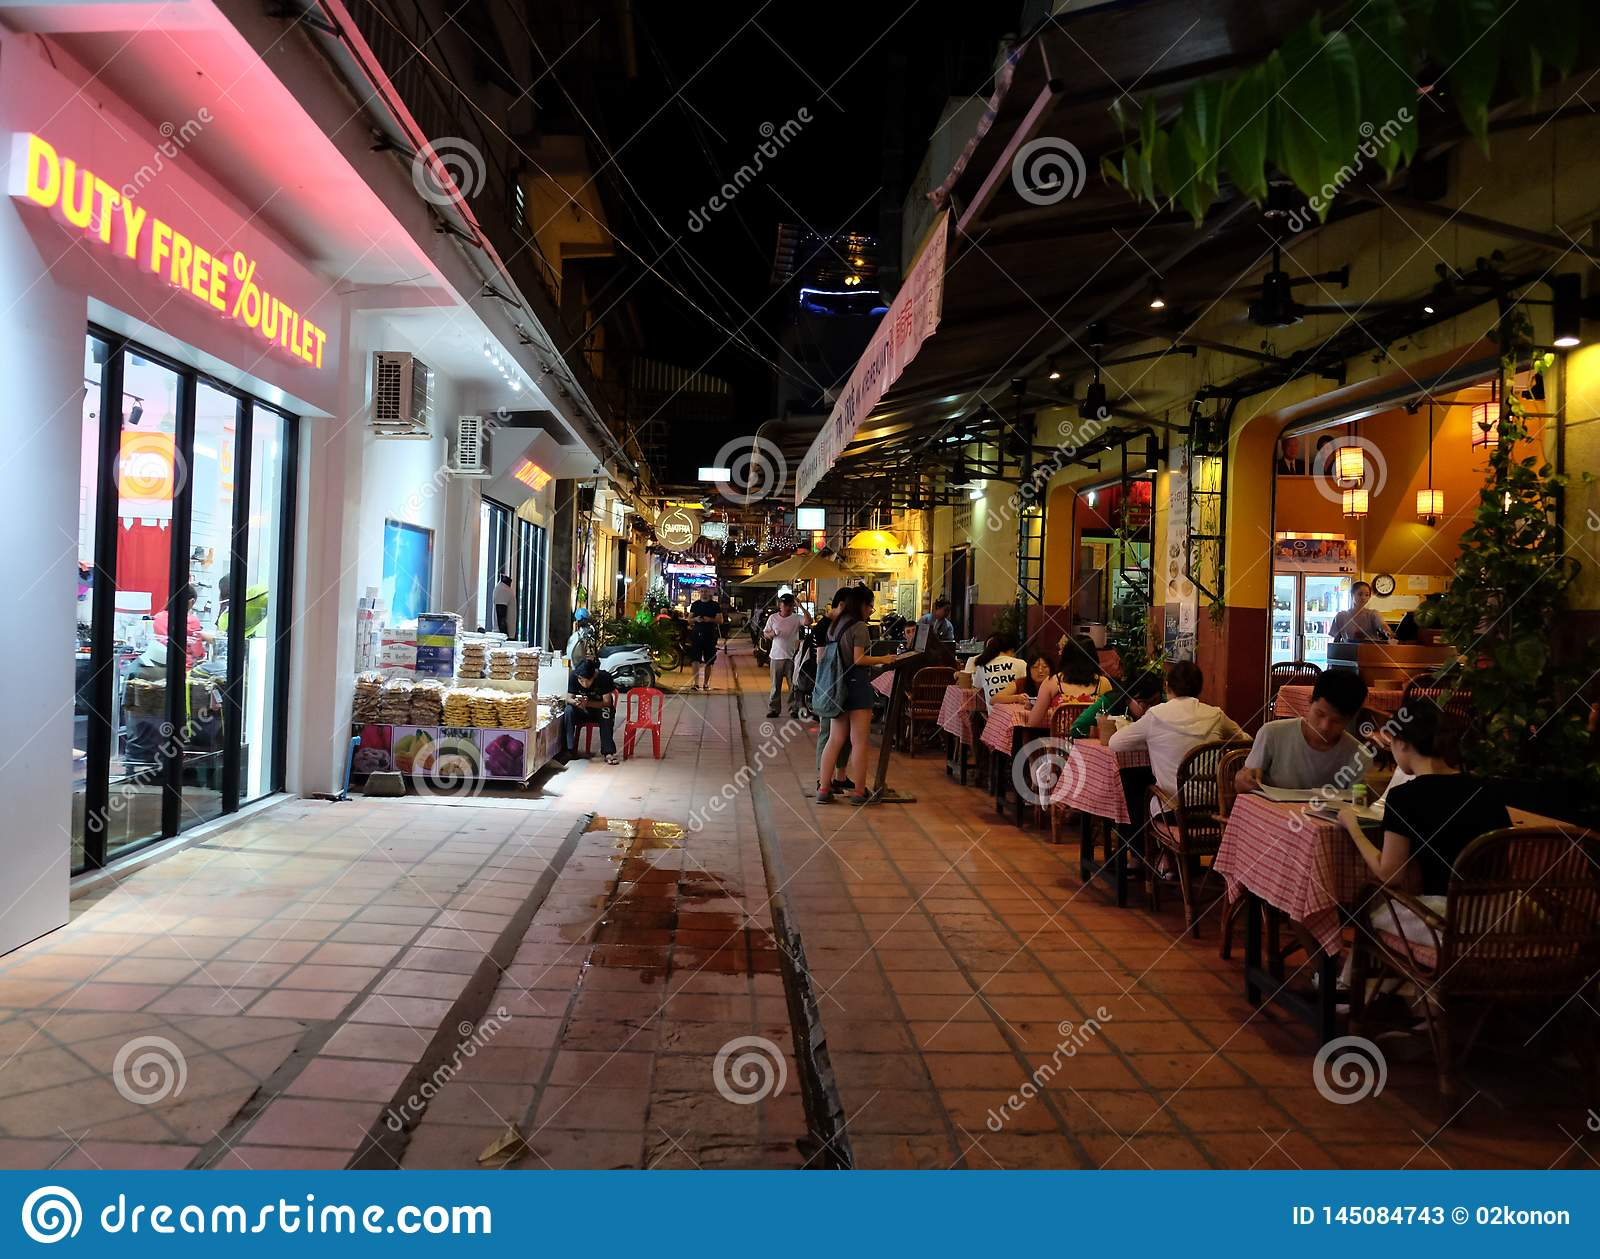 23 271 People Cafe Outside Photos Free Royalty Free Stock Photos From Dreamstime